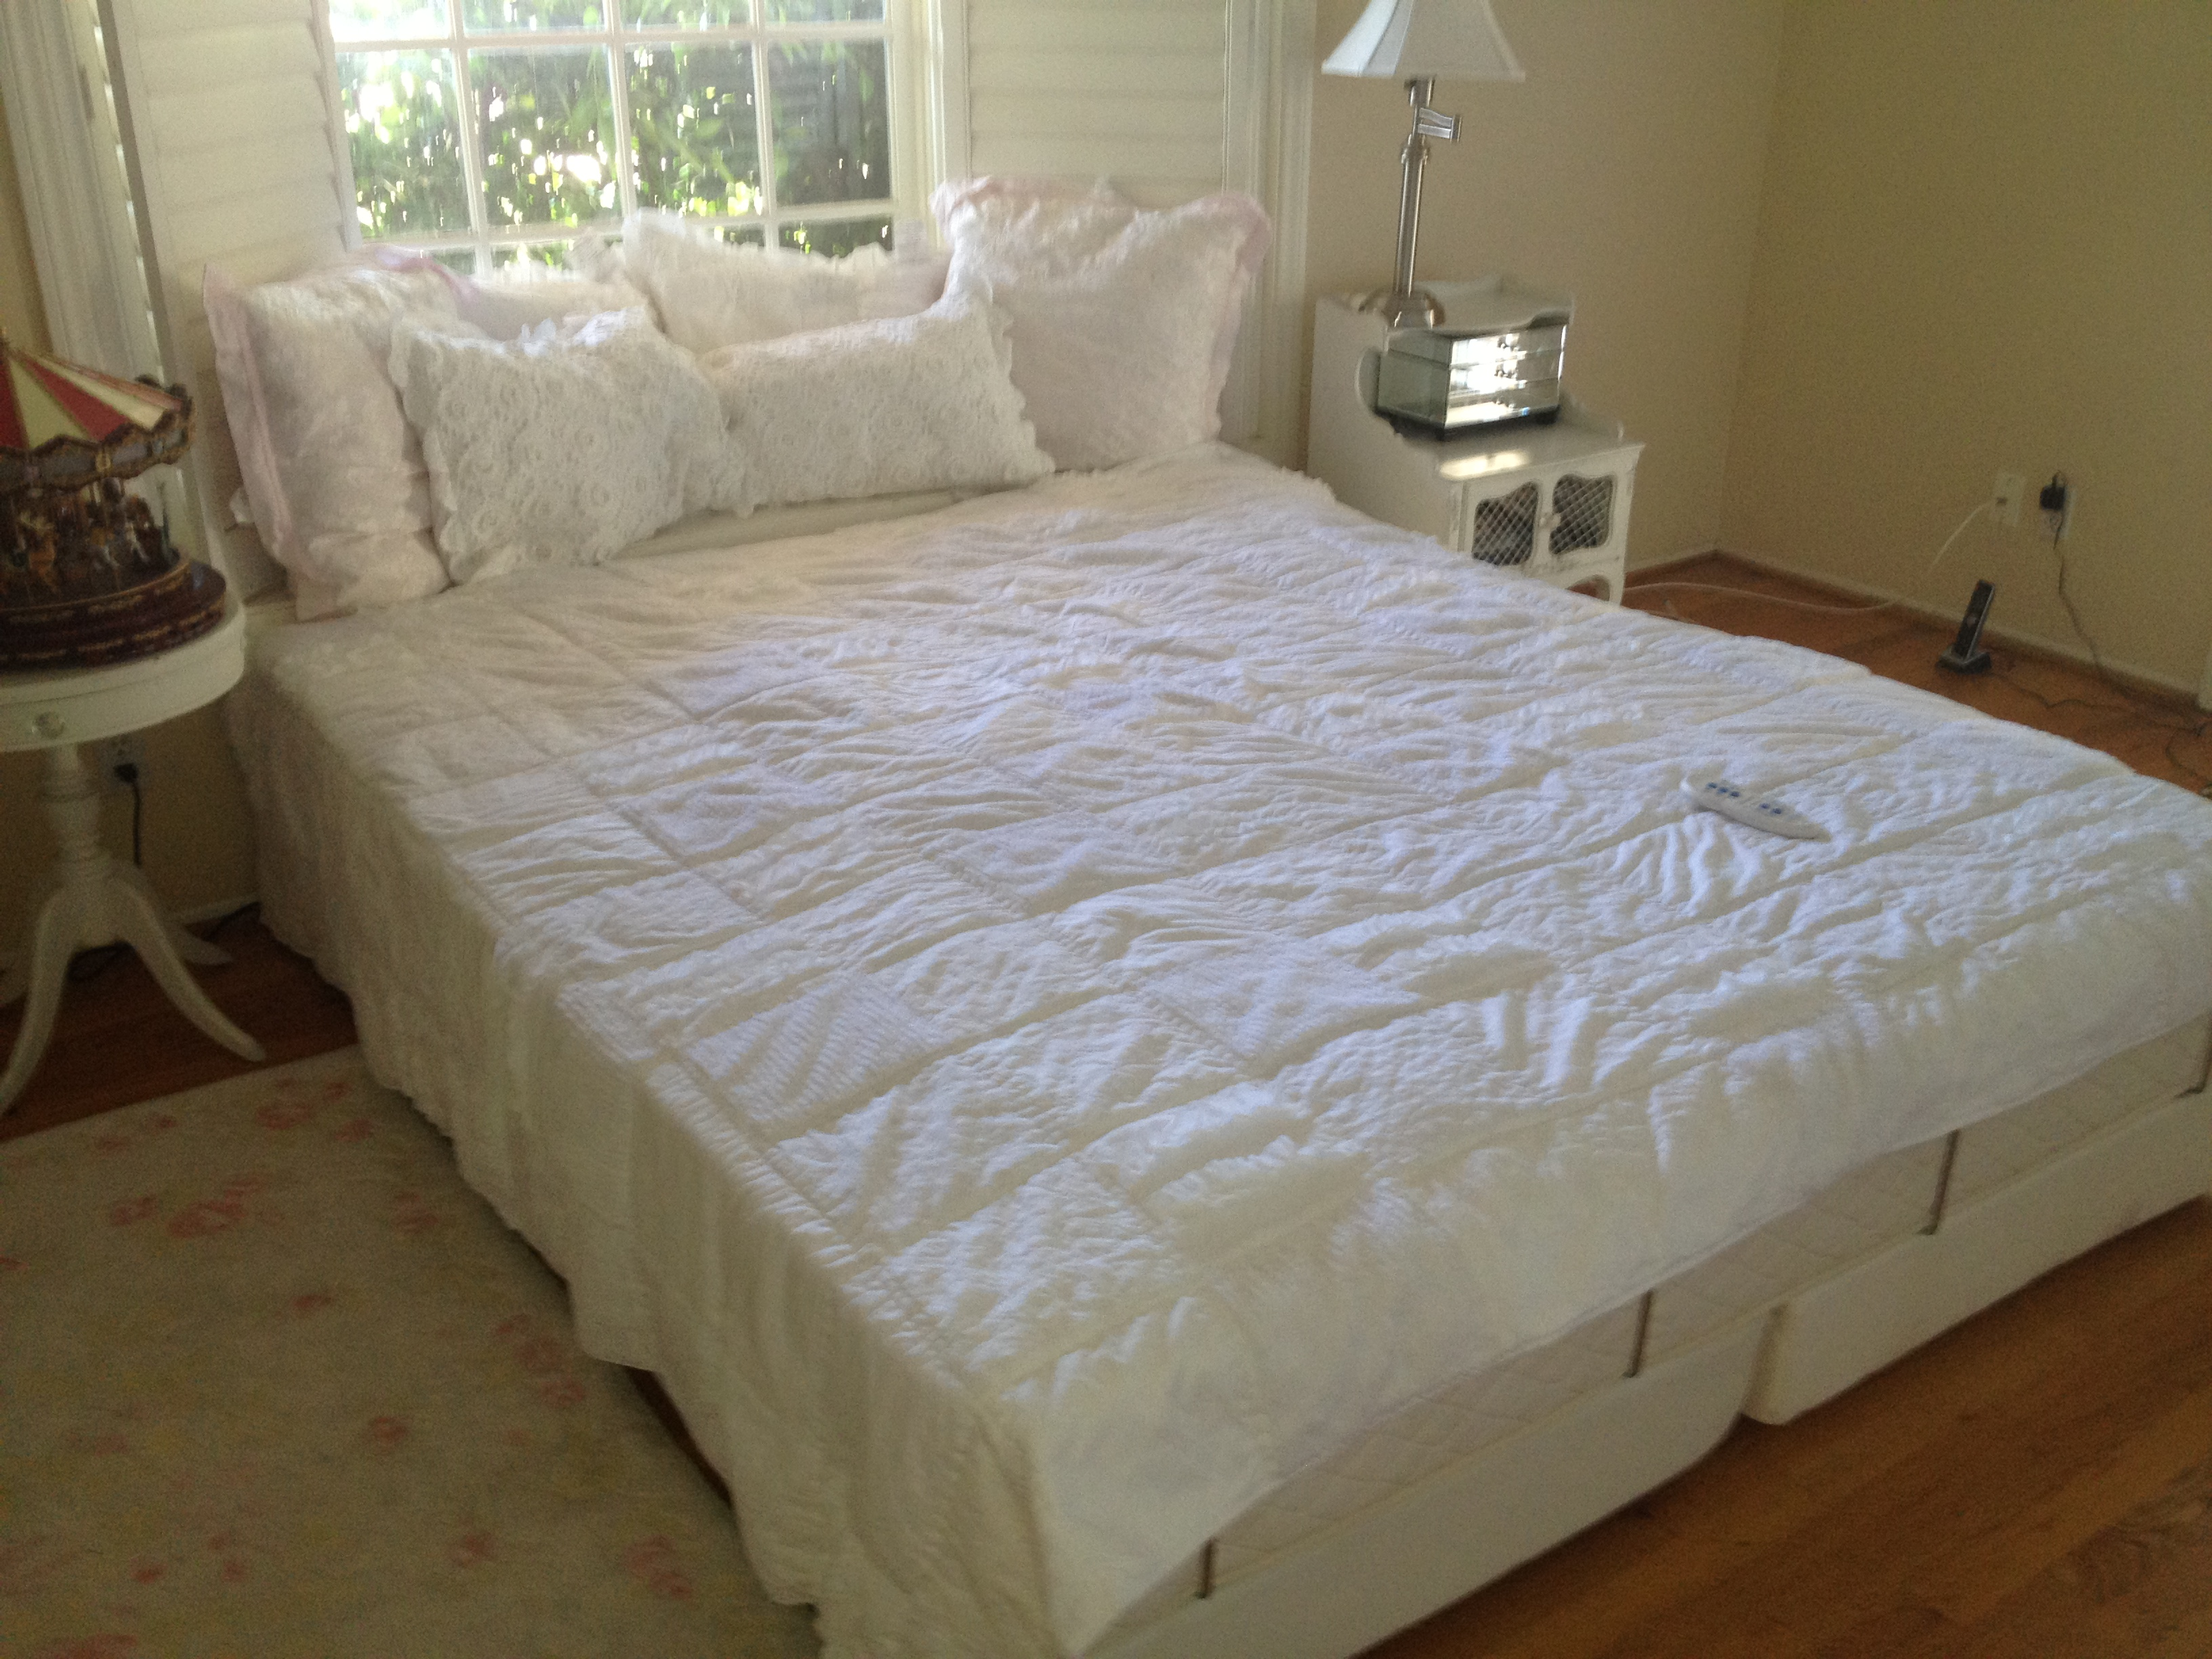 fashion leggett base frames group and bed pdx adjustable platt wayfair mattresses p